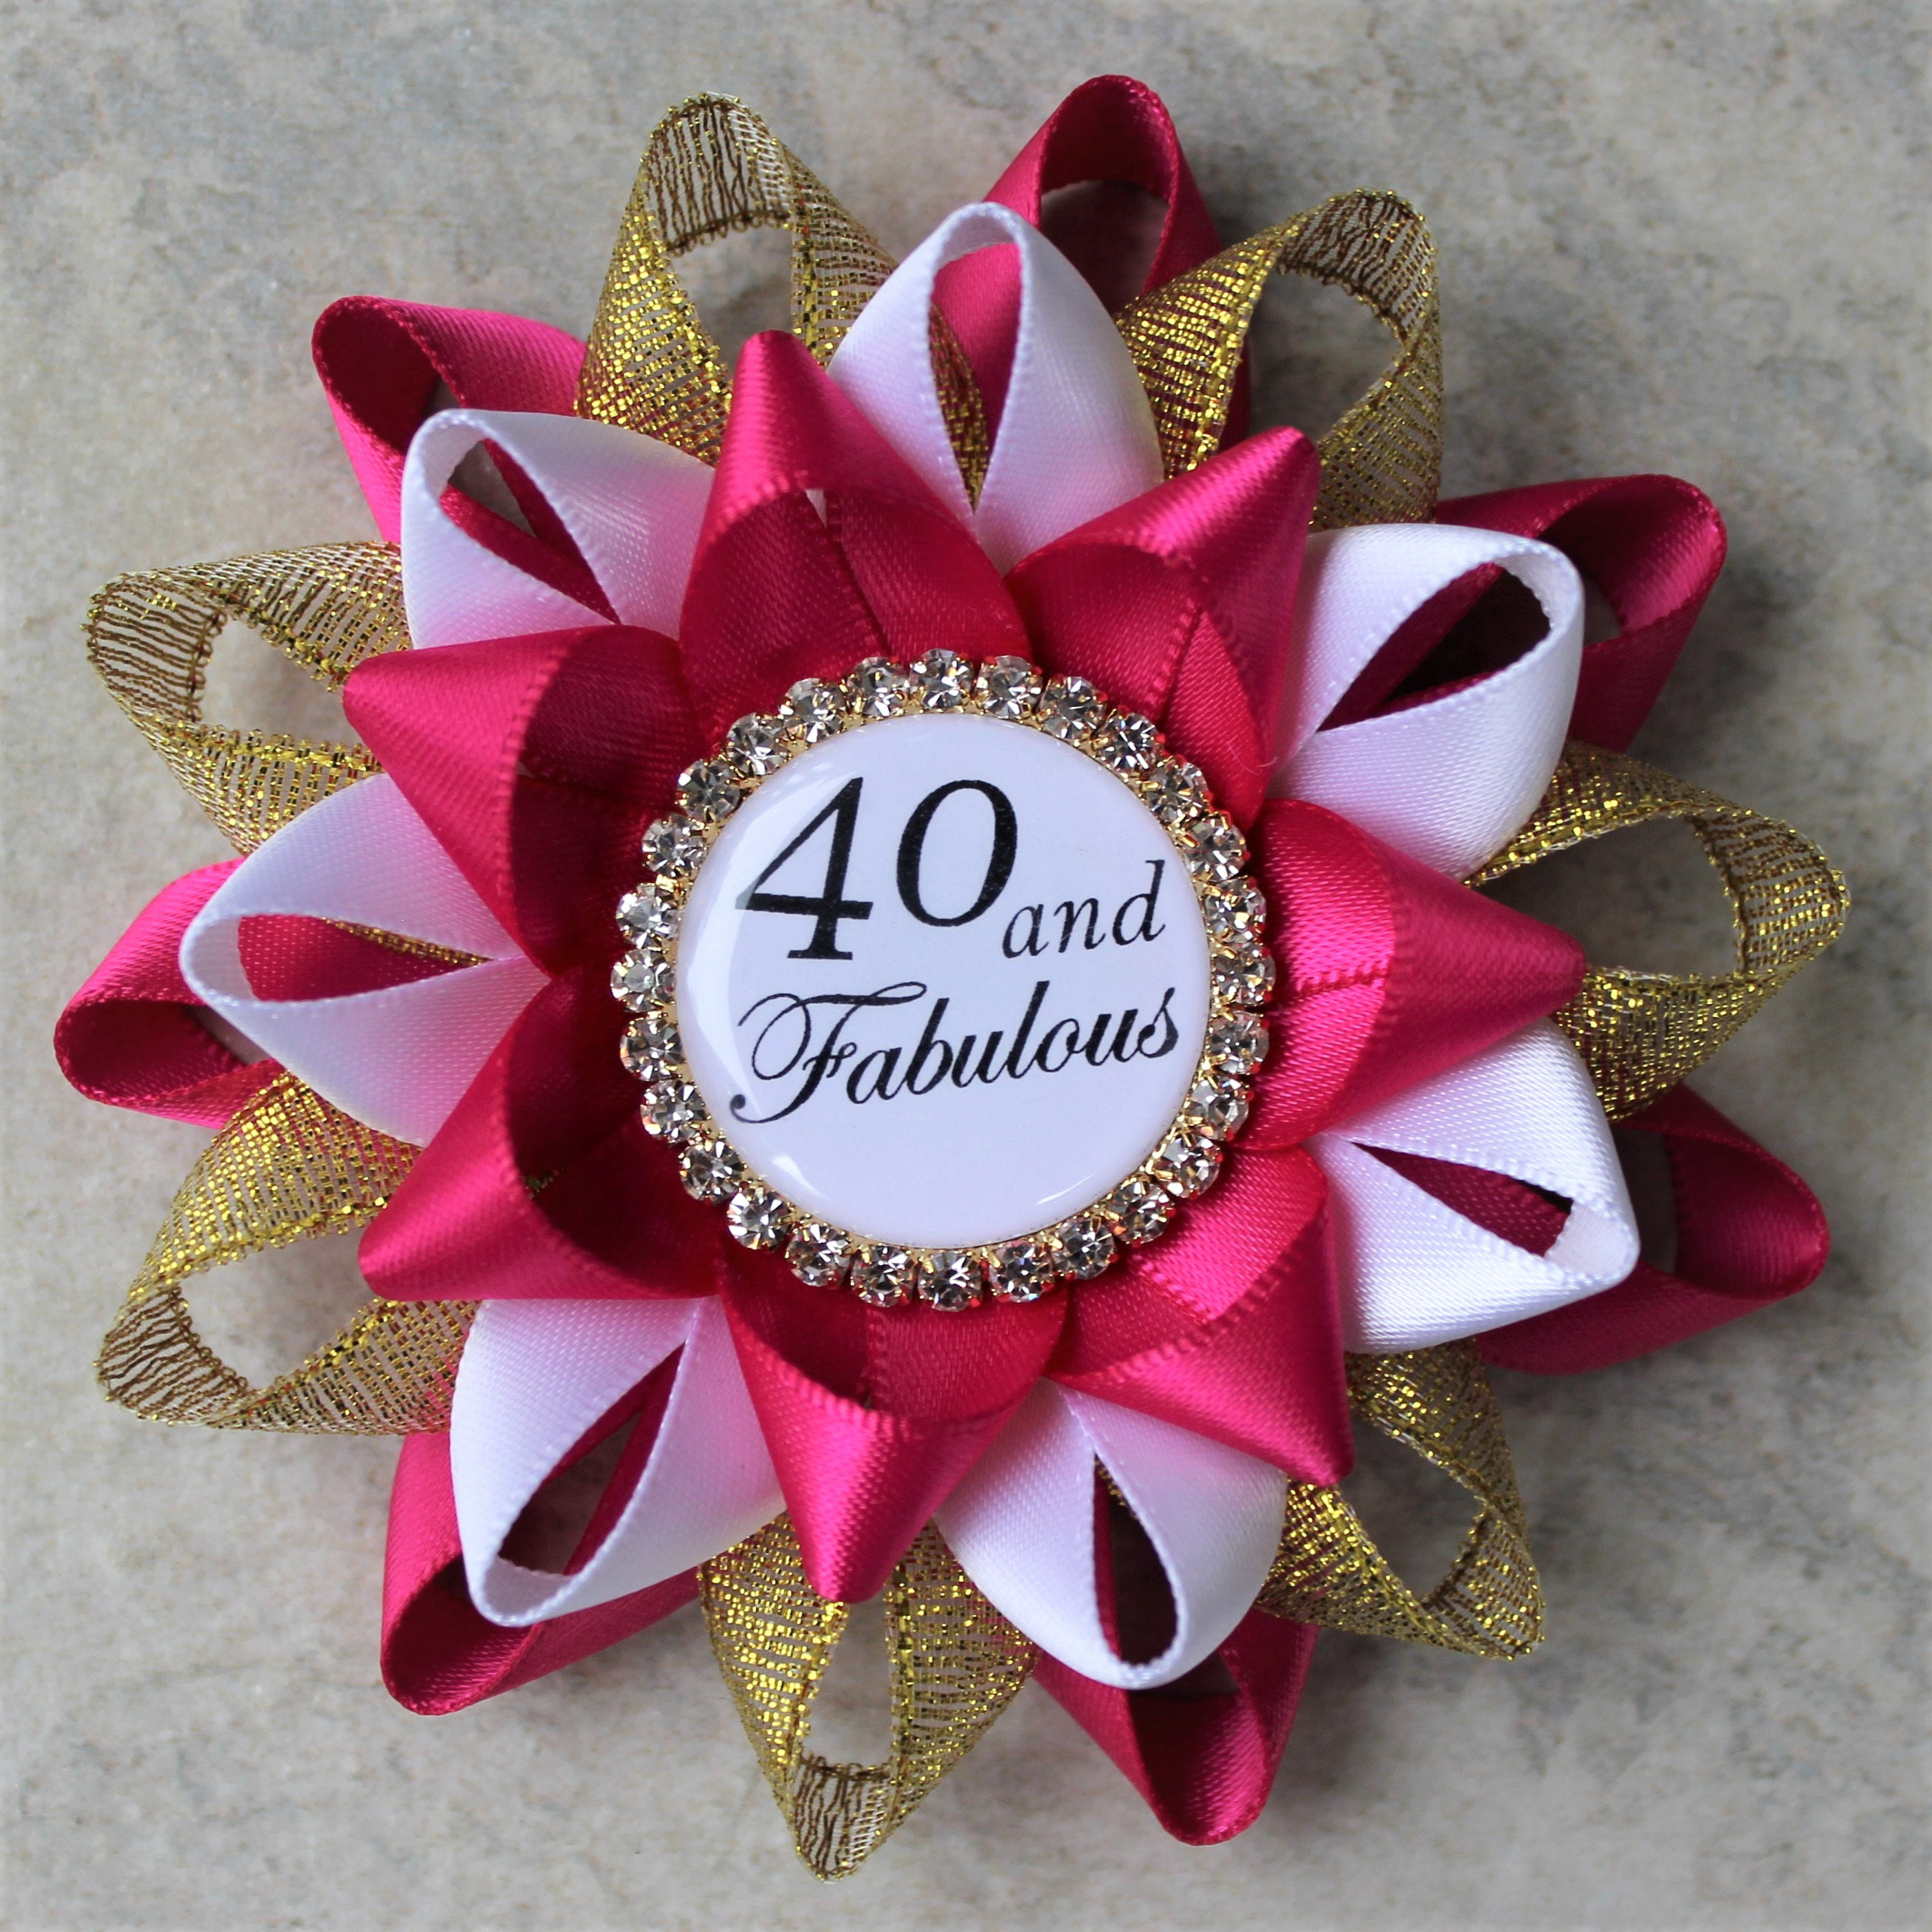 40th Birthday Party Decorations Fortieth Fuchsia Gold White Gallery Photo